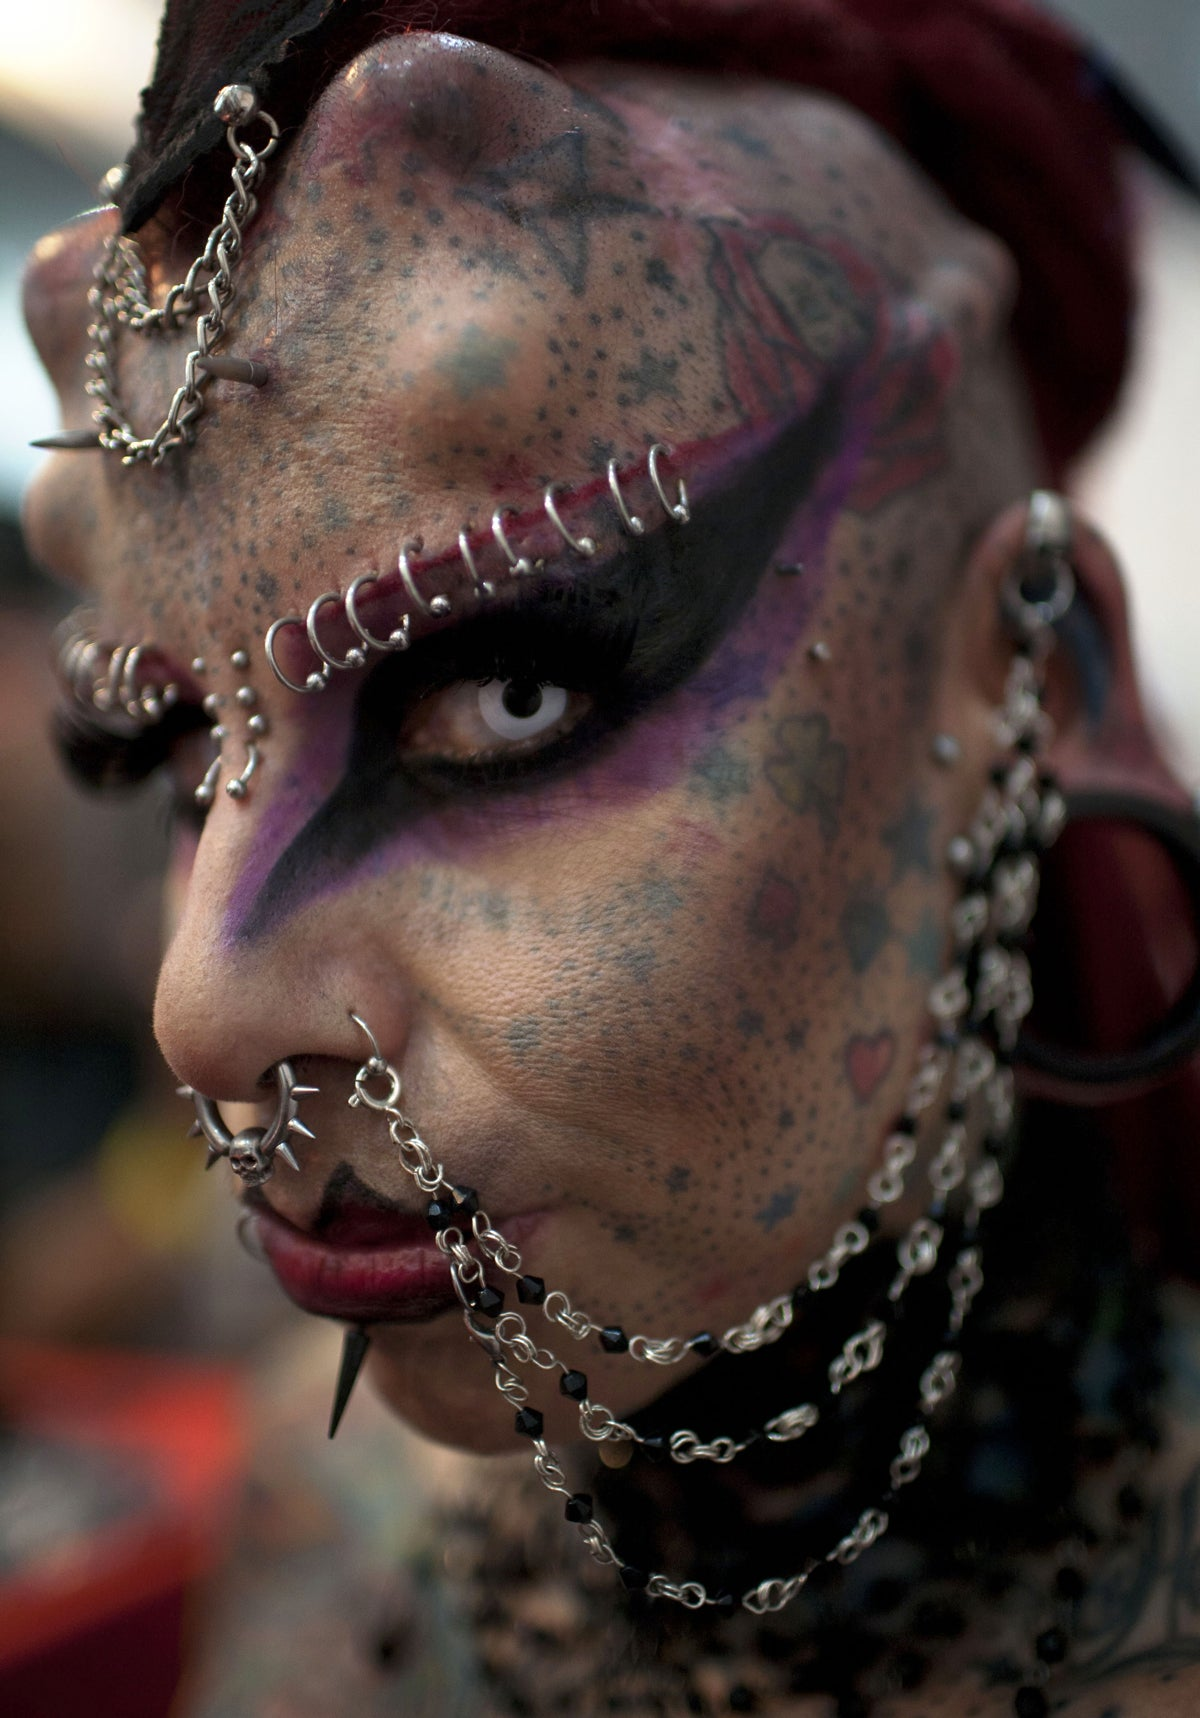 Woman With Most Extreme Body Modifications Just Got Even More Extreme | Gizmodo Australia